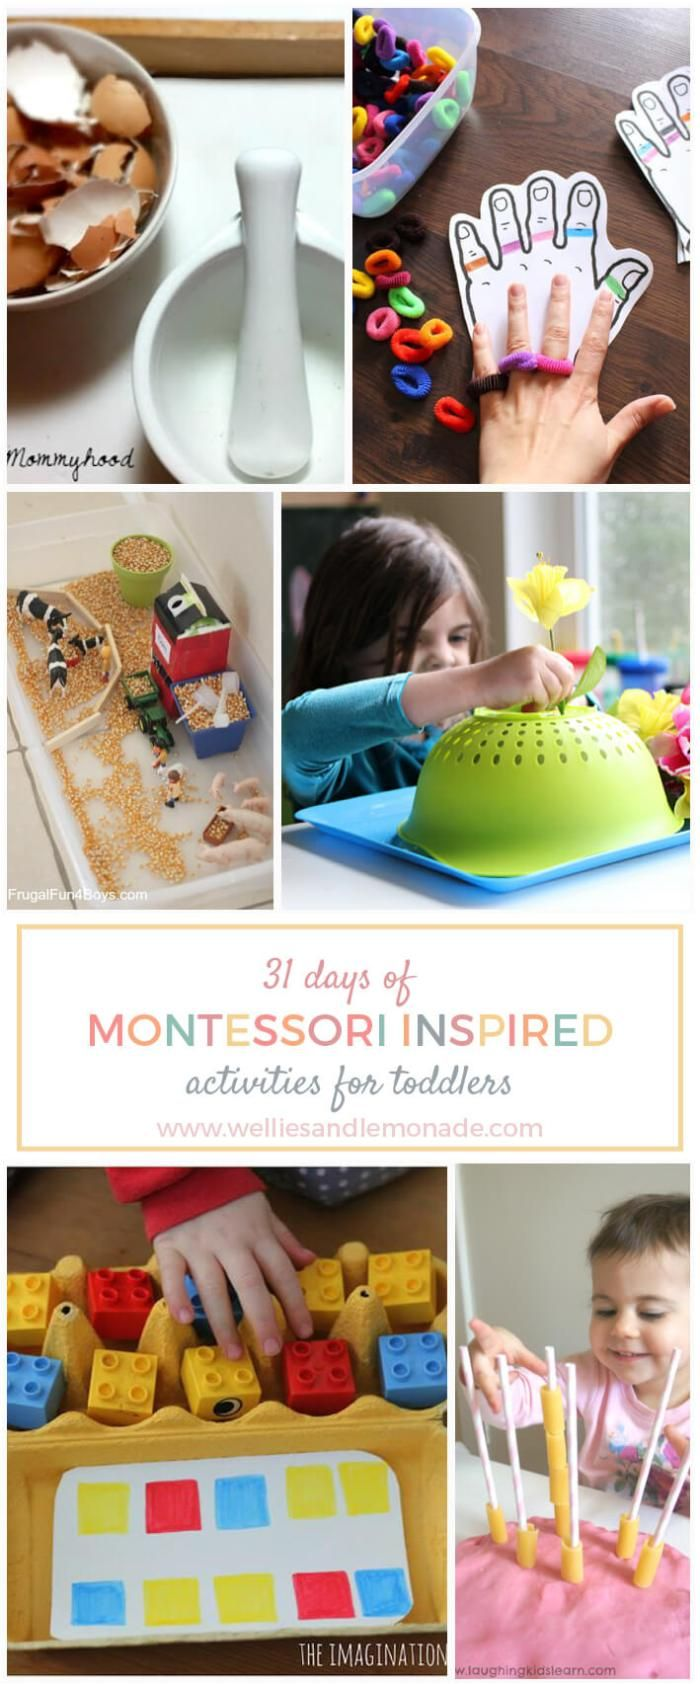 31 days of Montessori inspired activities for toddlers